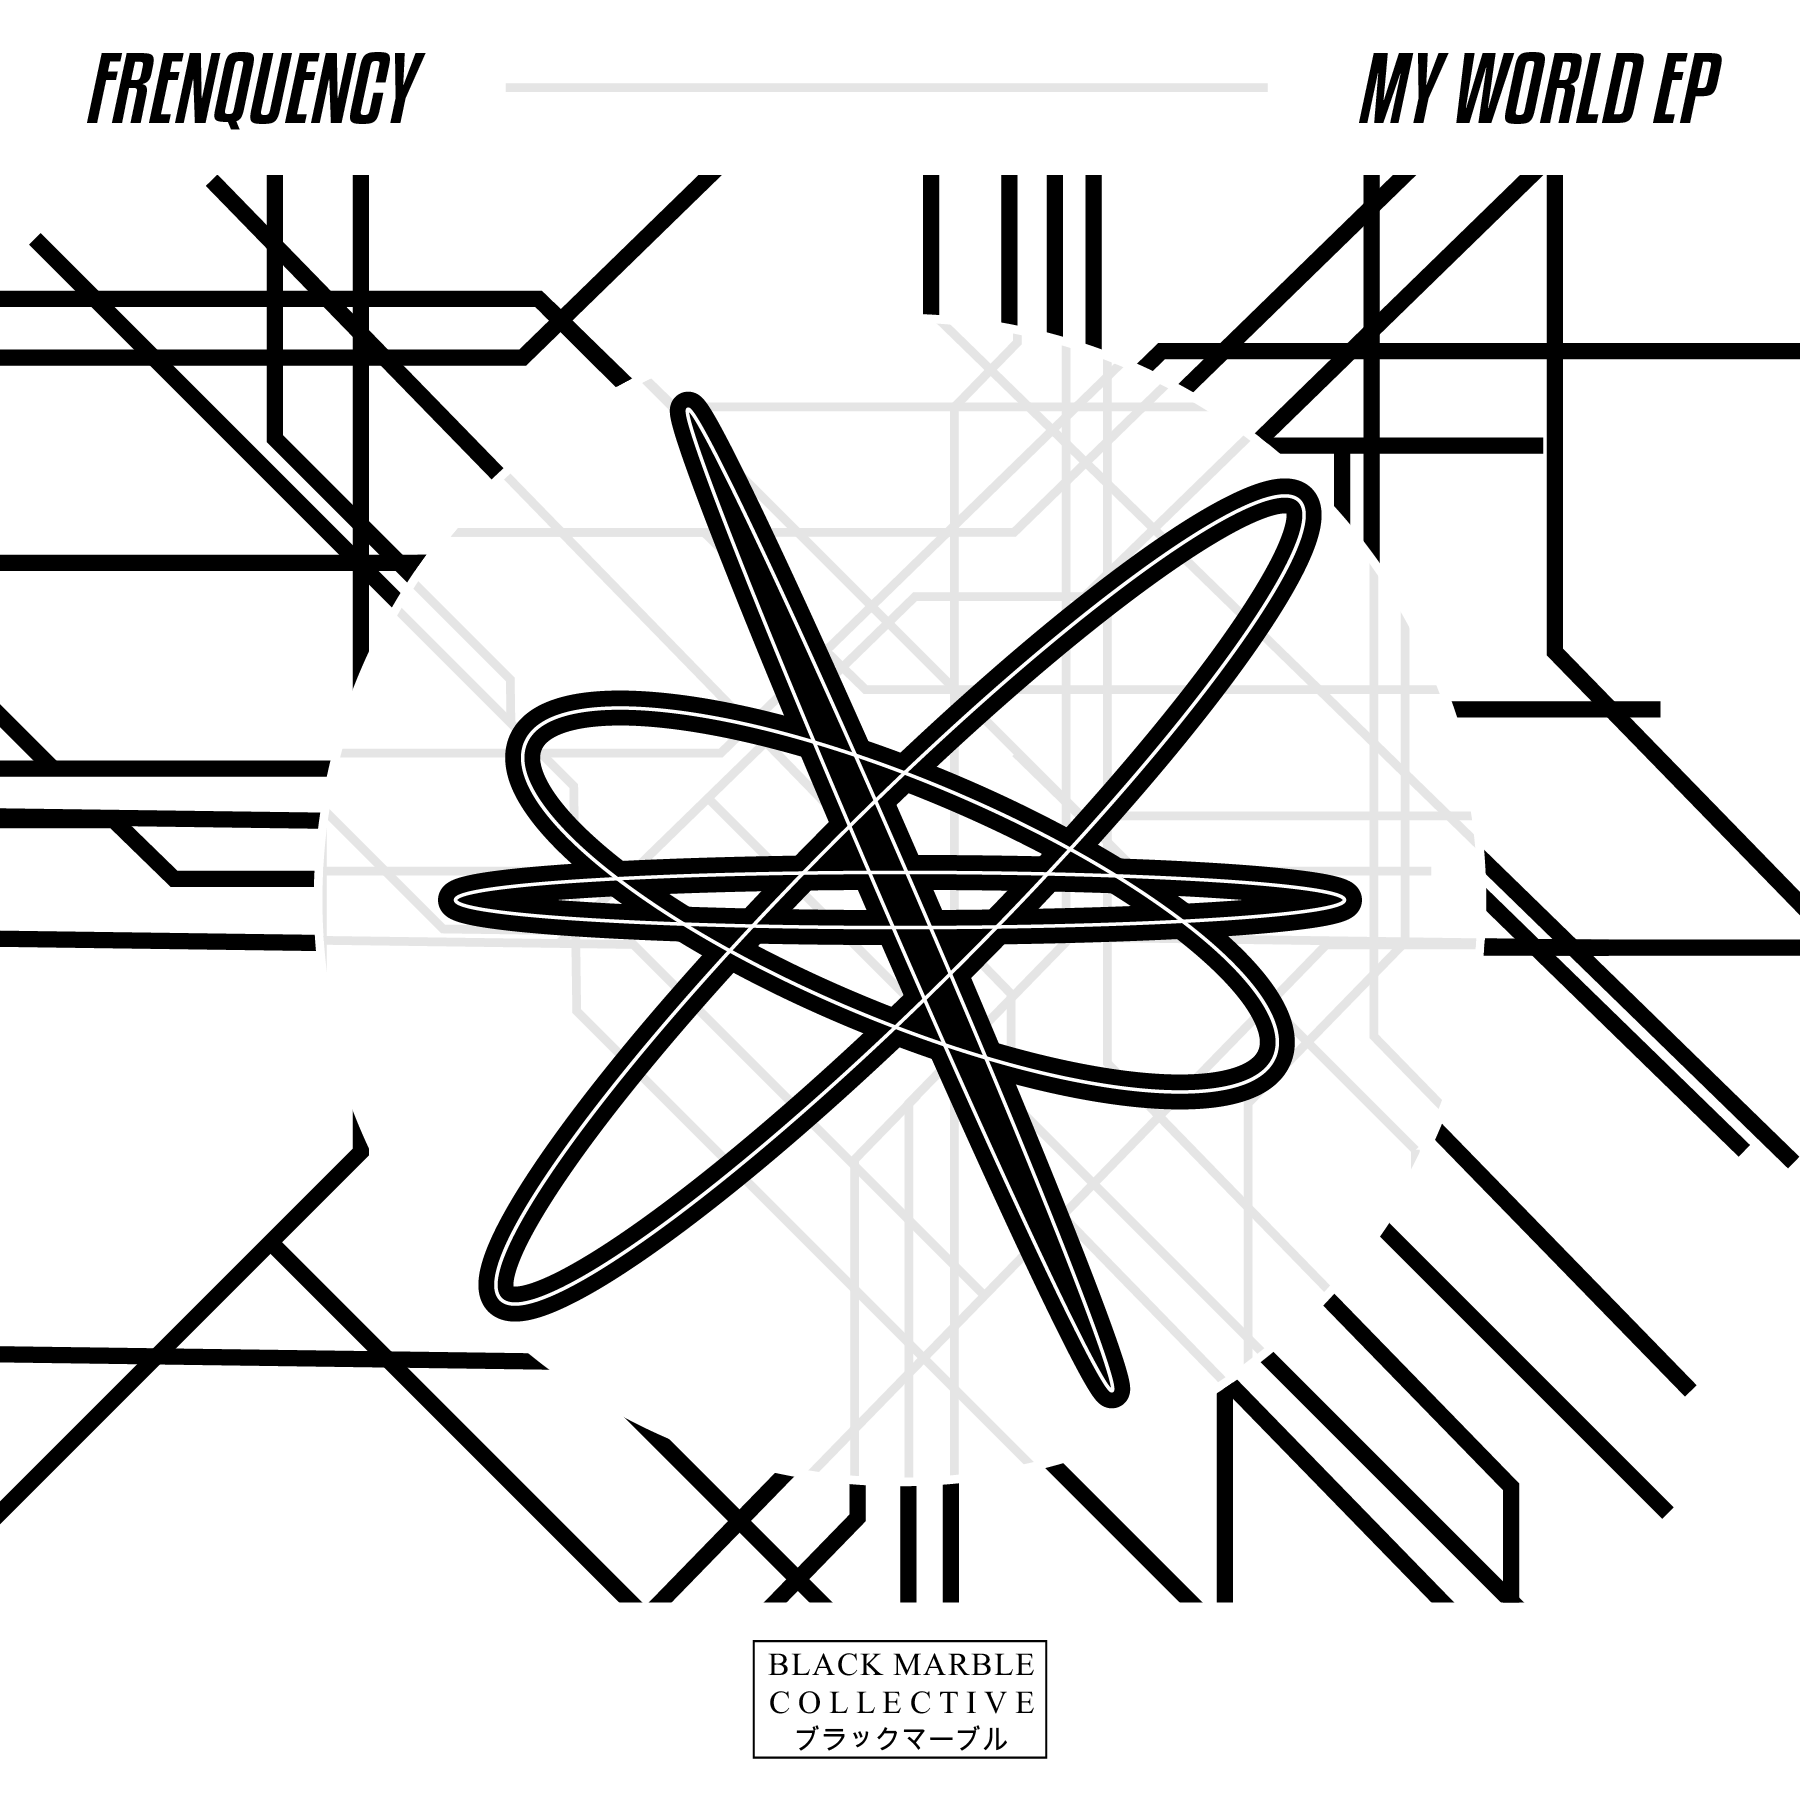 My World EP Artwork-04.png